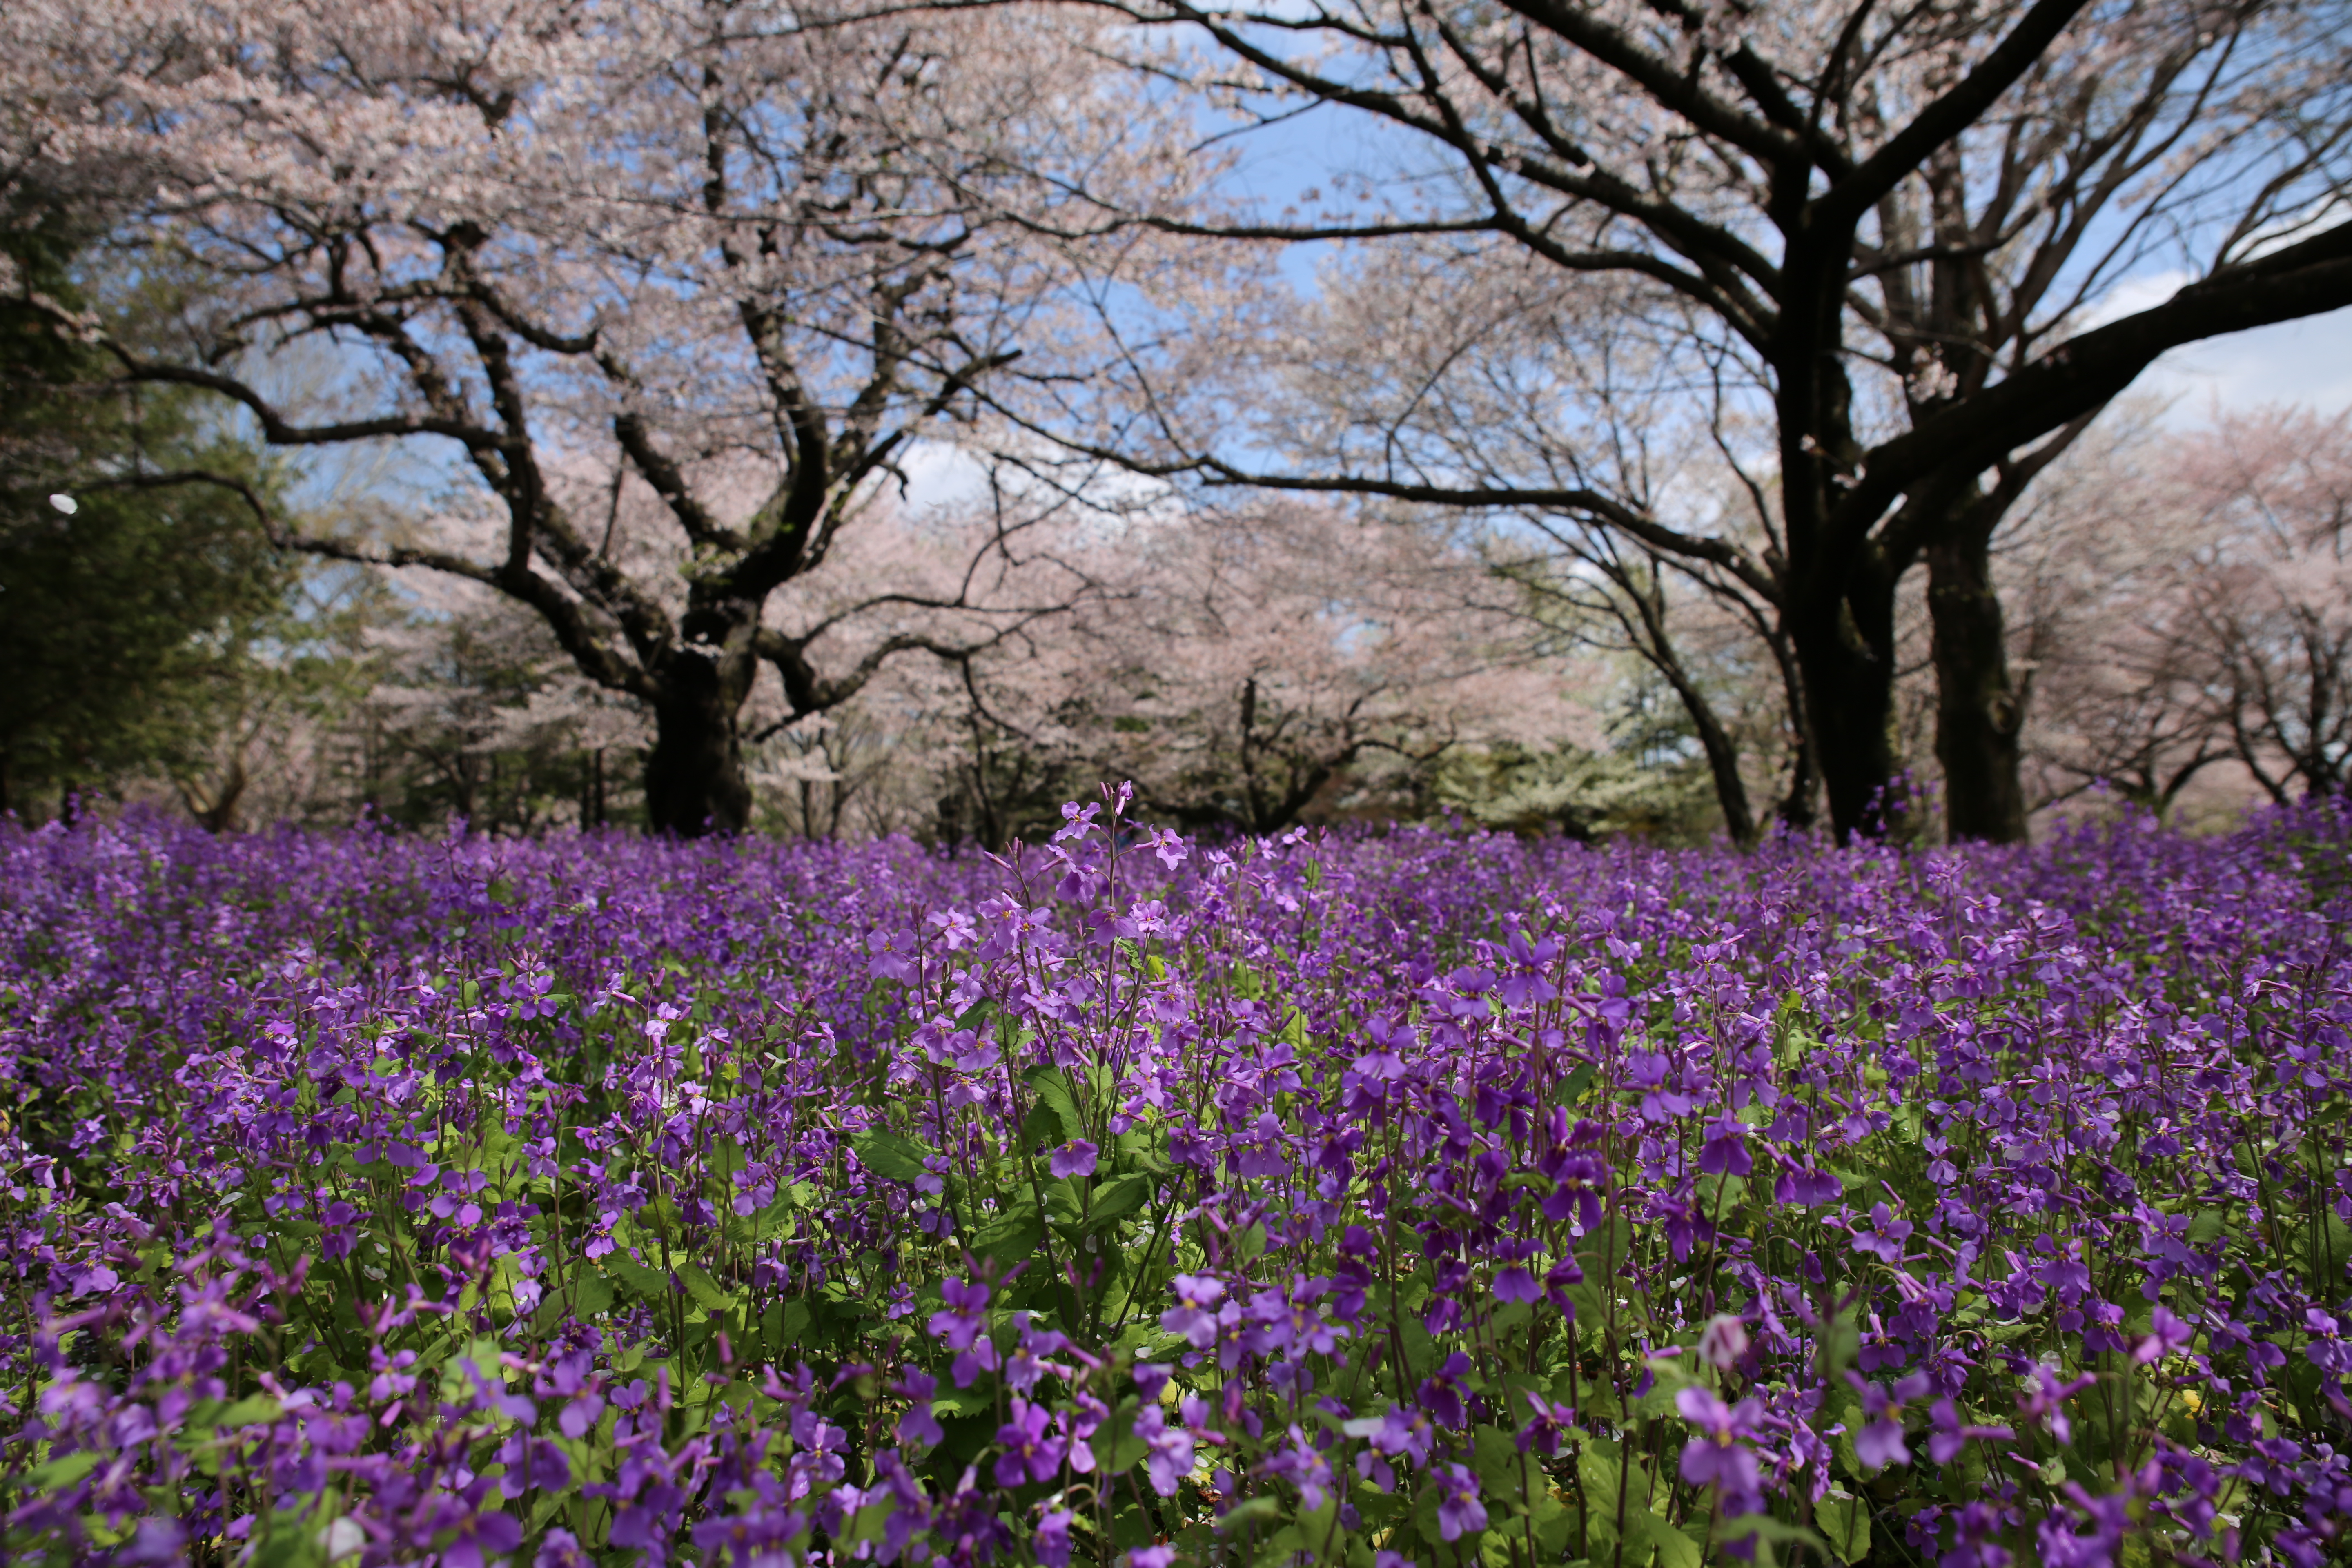 <b>EOS 5D Mark III / SP 24-70mm F2.8 Di VC USD / 約8MB / 5,760×3,840 / 1/800秒 / F4.5 / -0.3EV / ISO100 / 絞り優先AE / WB:オート / 24mm</b>